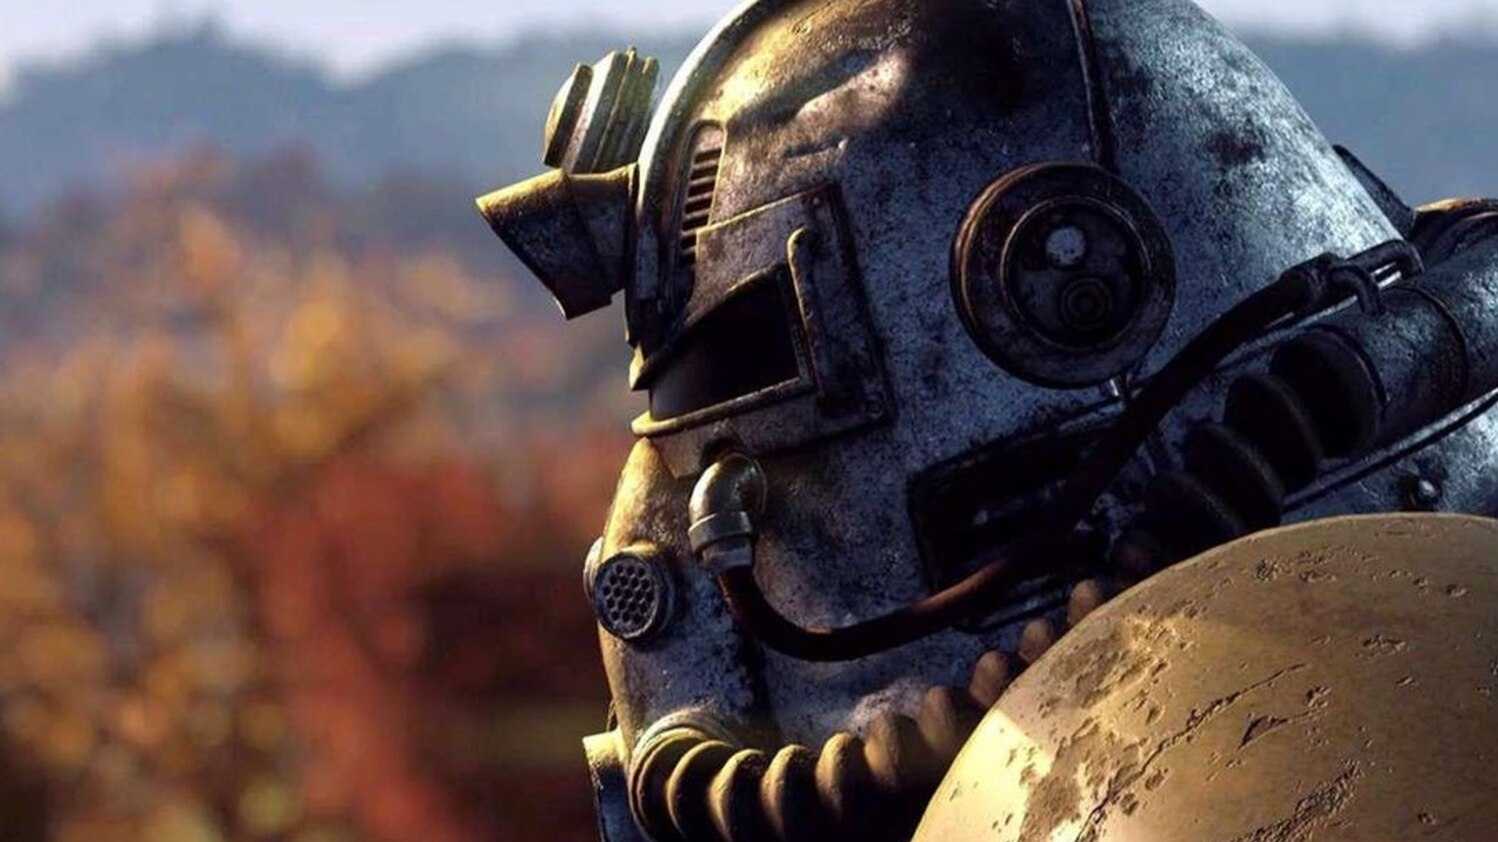 Bethesda Patches Fallout 76 Cheat After Hacker Uses It To Steal Players' Items